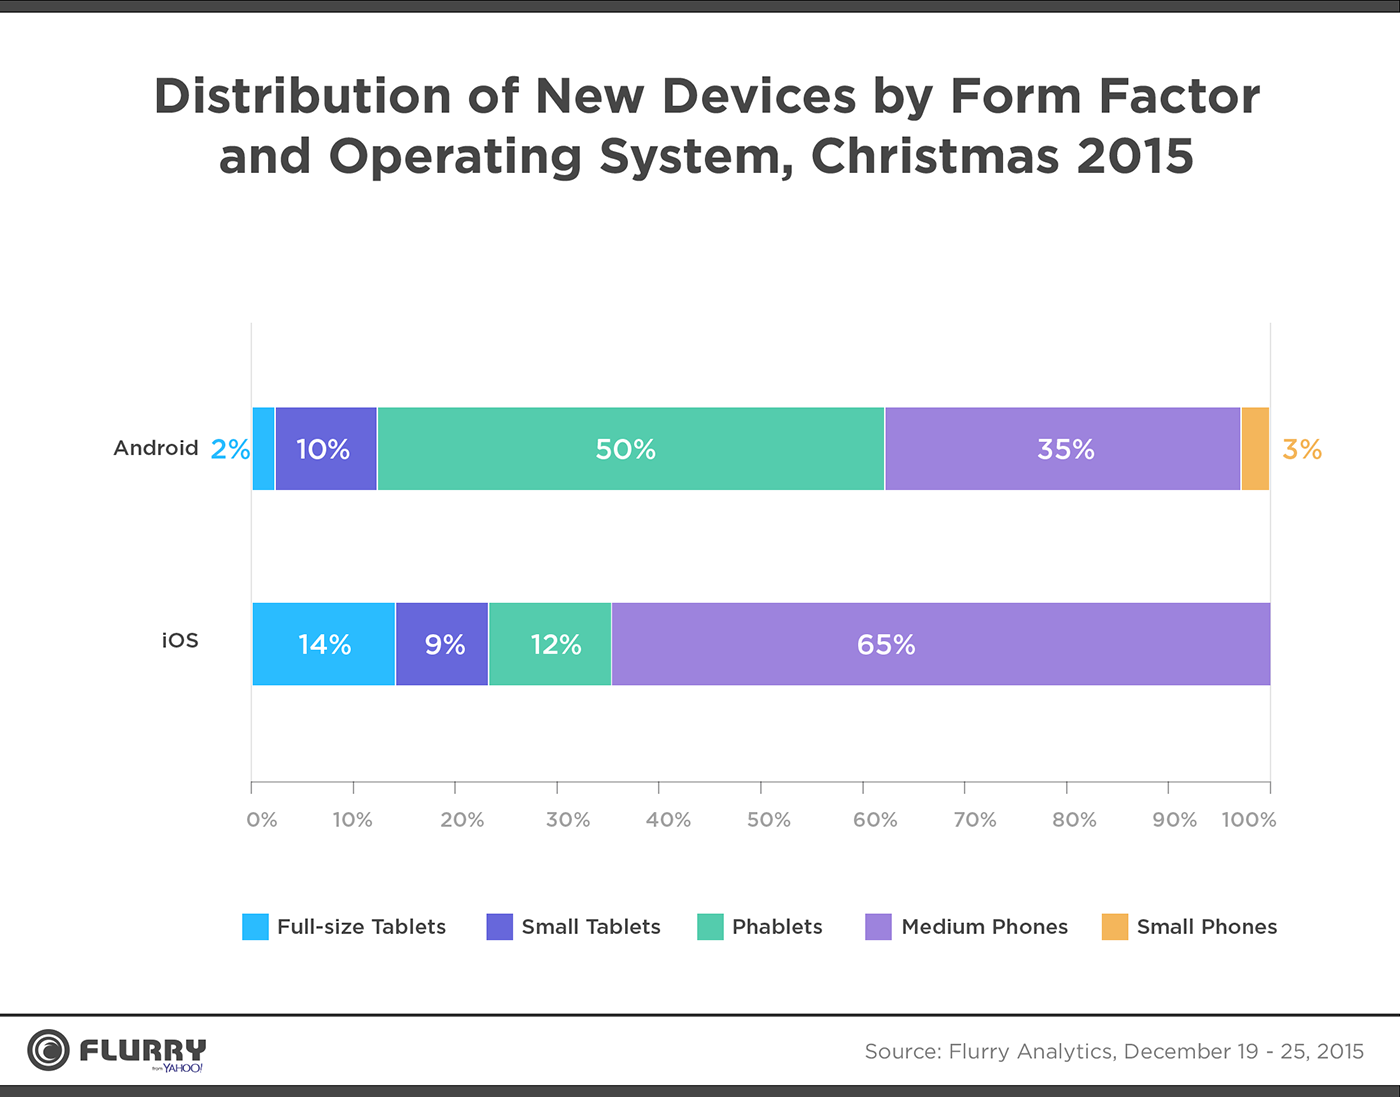 Distribution of New Devices by Form Factor and Operating System, Christmas 2015 - Full size tablets, small tablets, phablets, medium phones, small phones